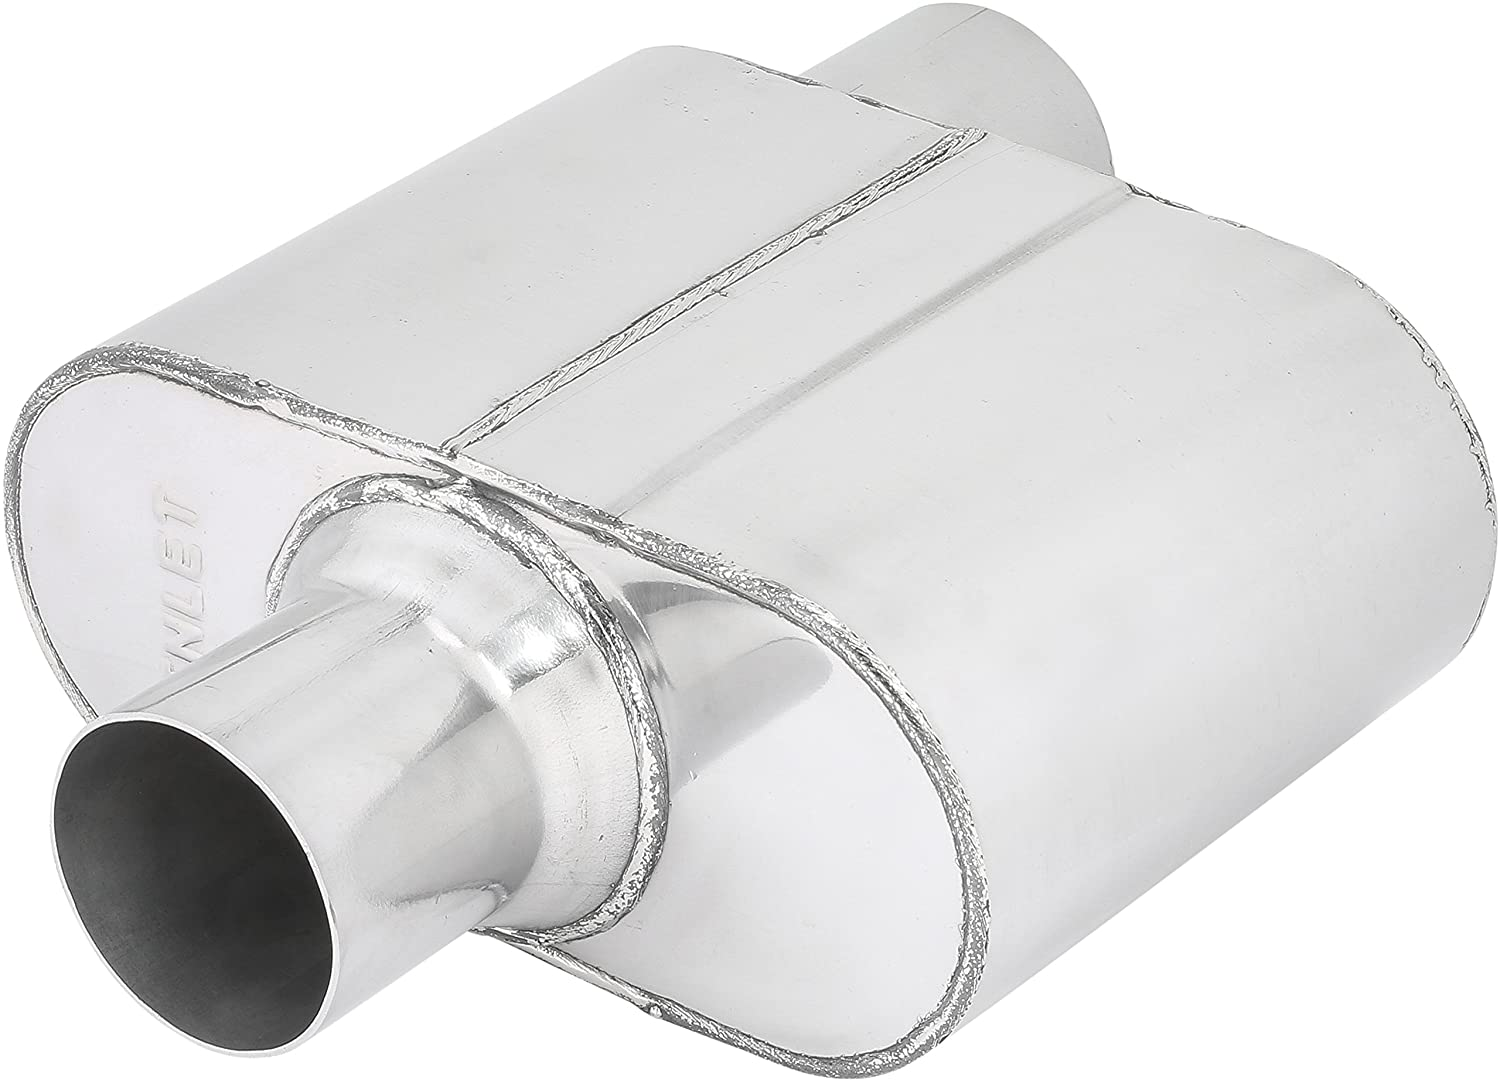 TOTALFLOW Polished 542512 409 Stainless Steel Single Chamber Universal Muffler Center in 2.5 Offset Out